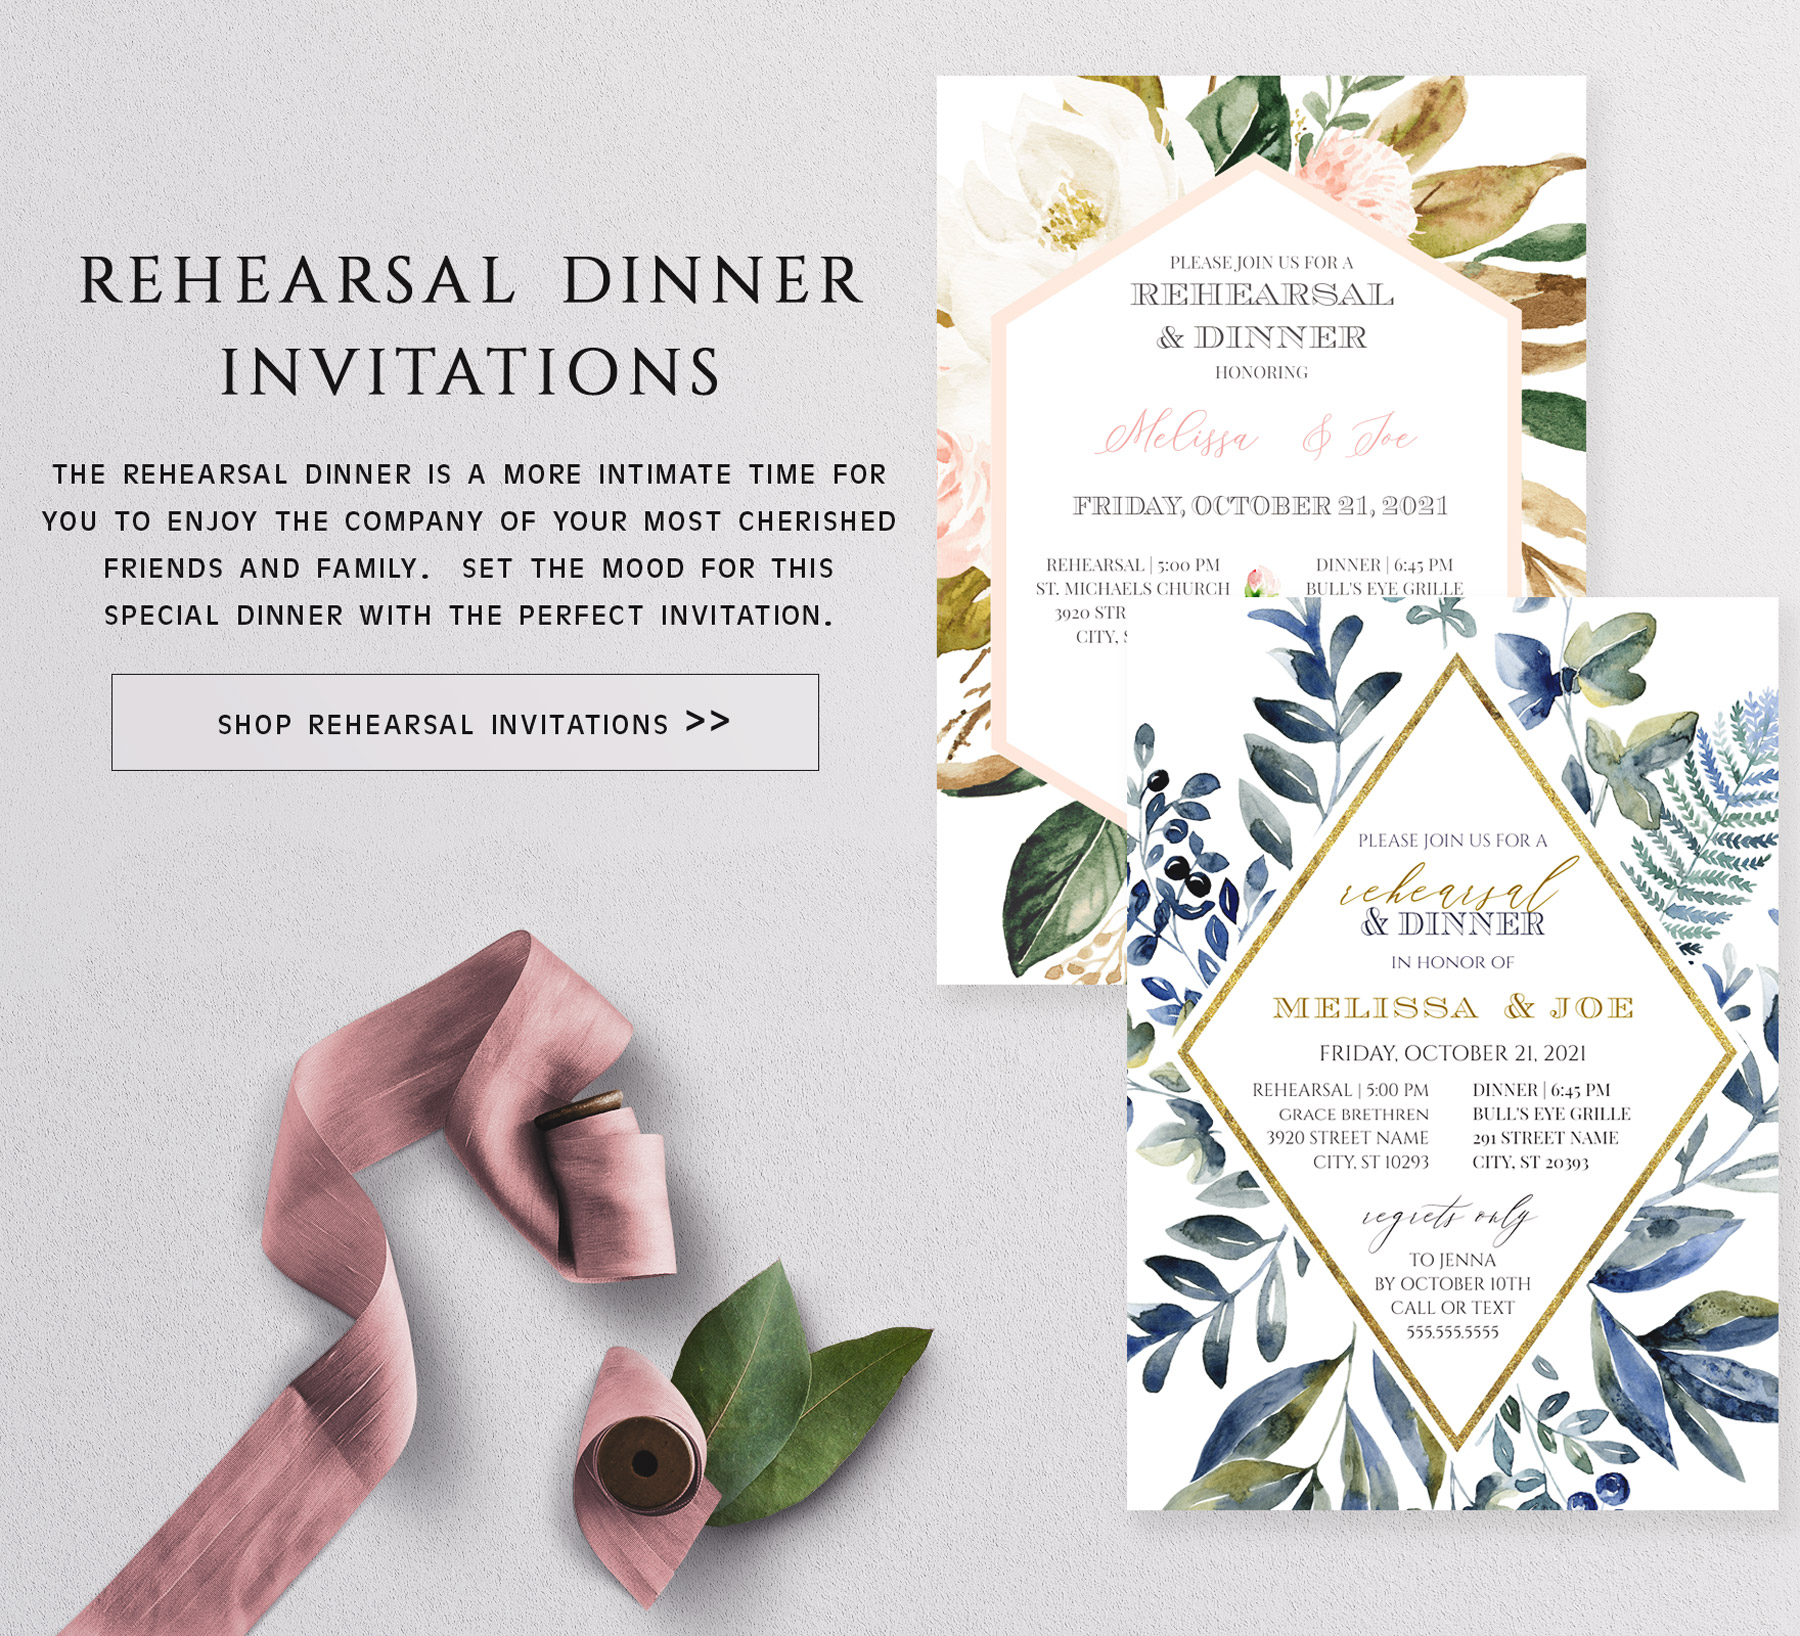 rehearsal-dinner-invitations-shop